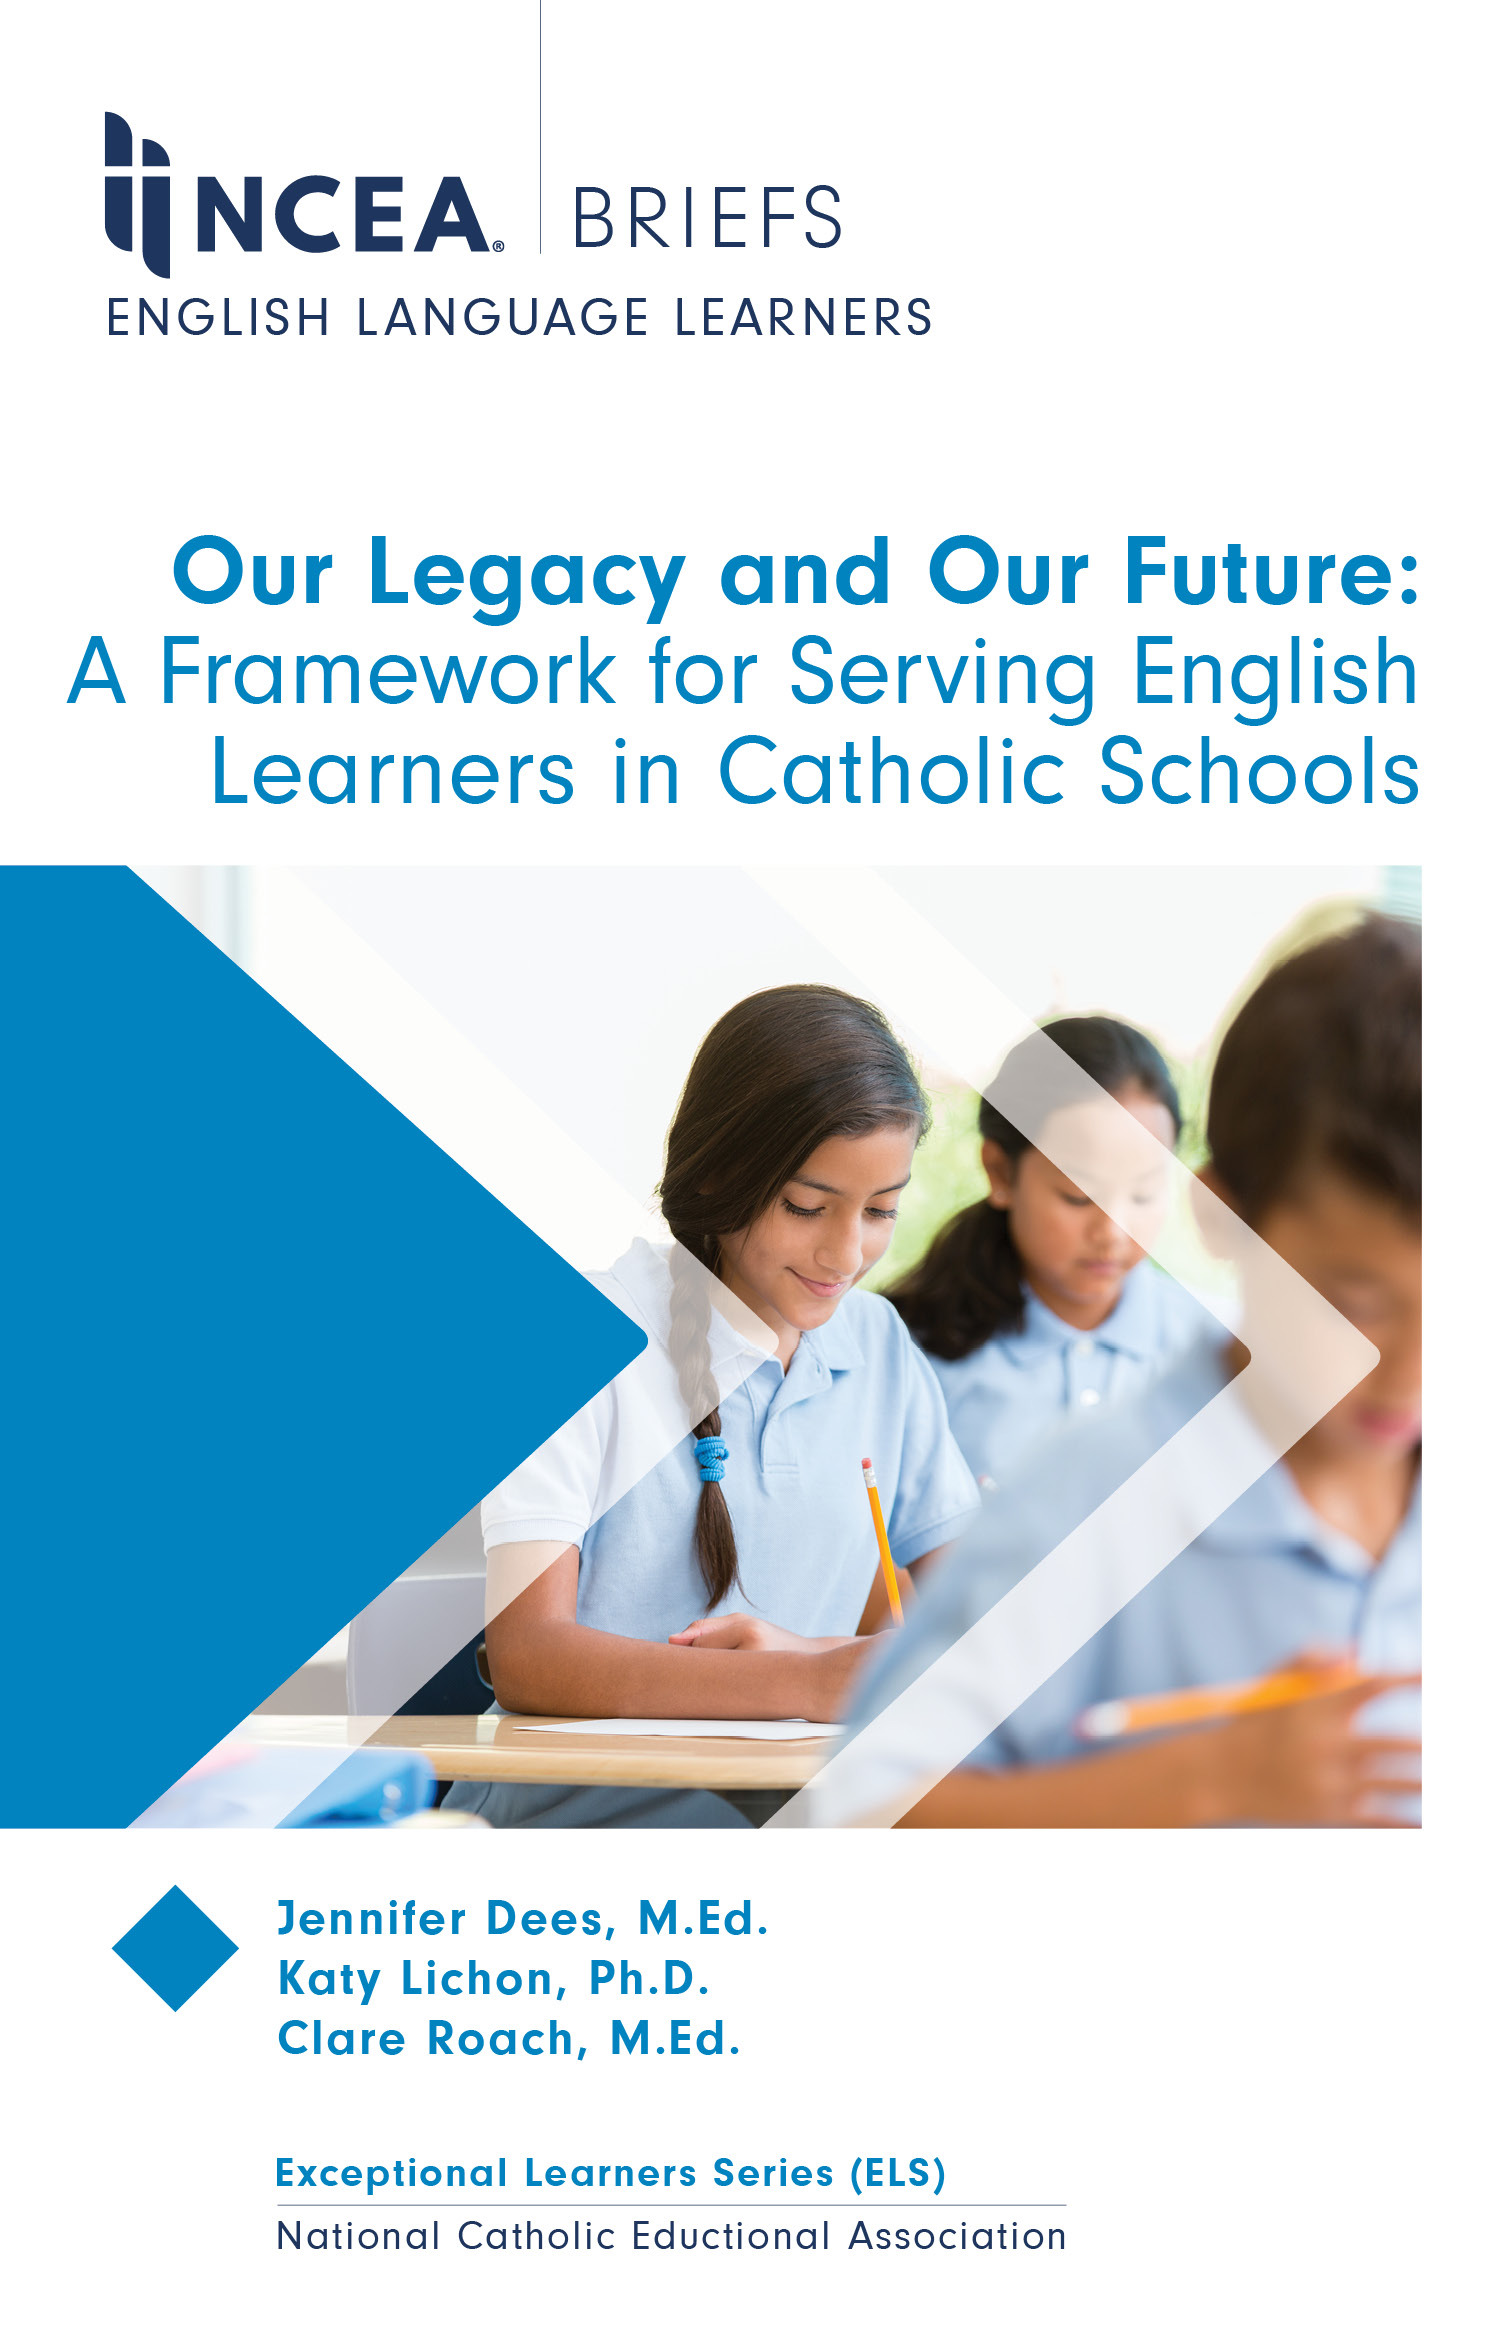 NCEA Brief: English Language Learner